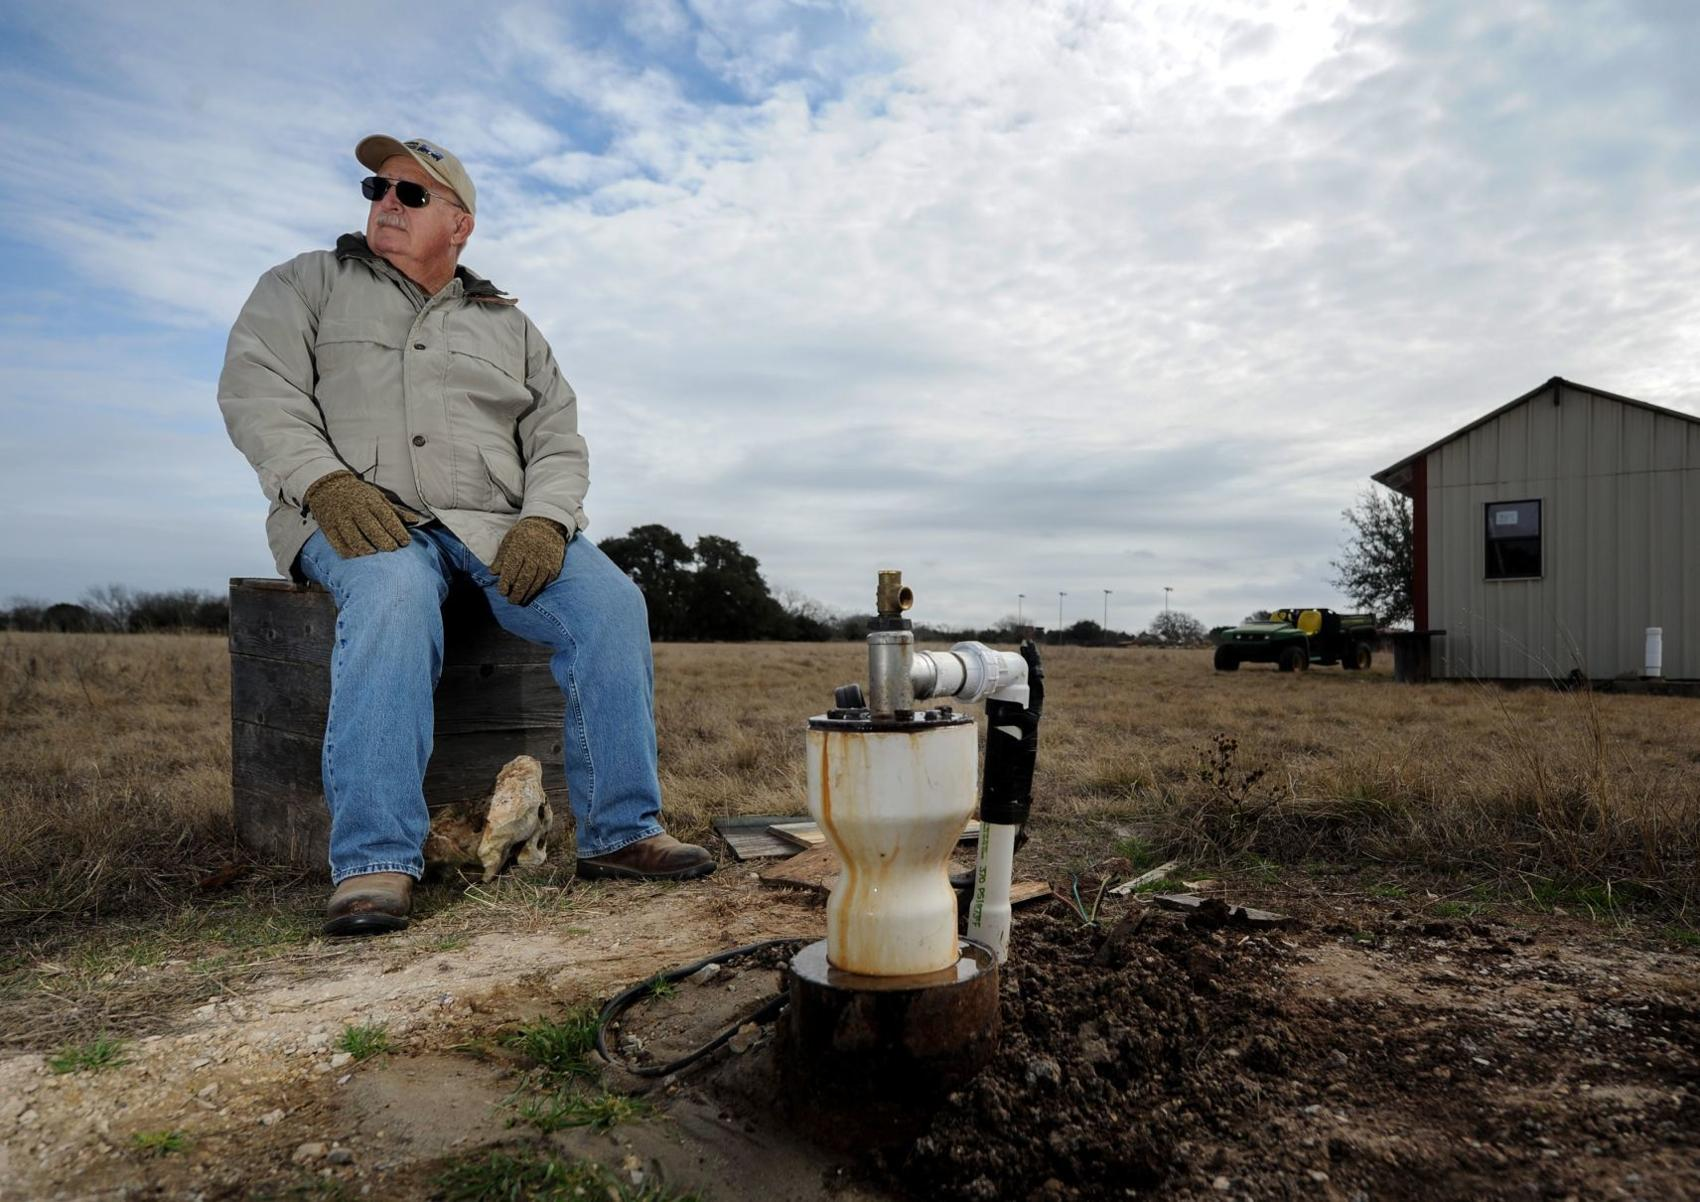 Well's gone dry: aquifers taking a hit during the drought